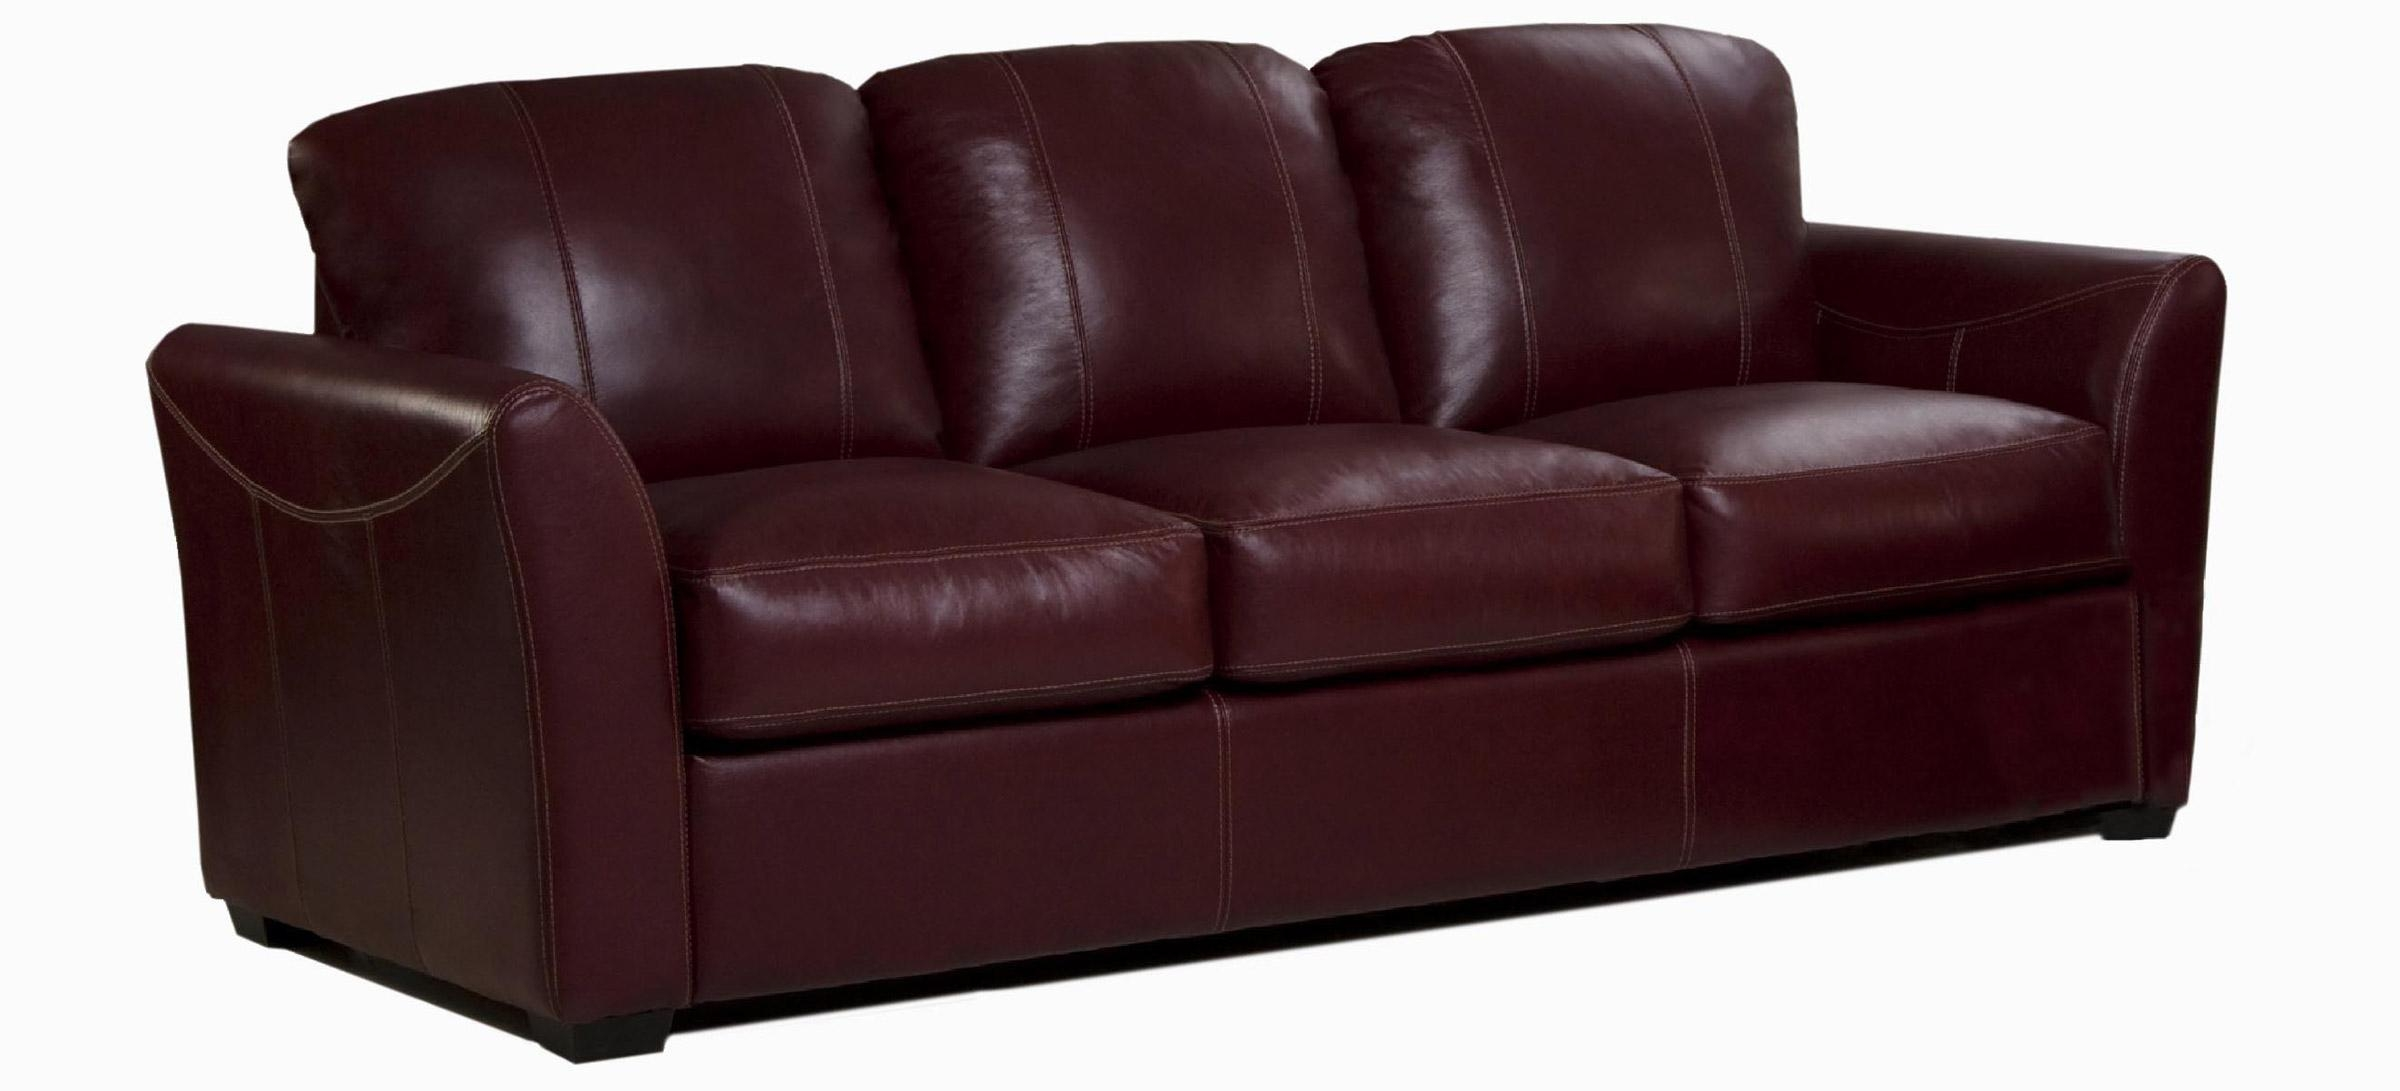 Bellini Sofa | Sofa Gallery | Kengire With Bellini Couches (Image 5 of 20)